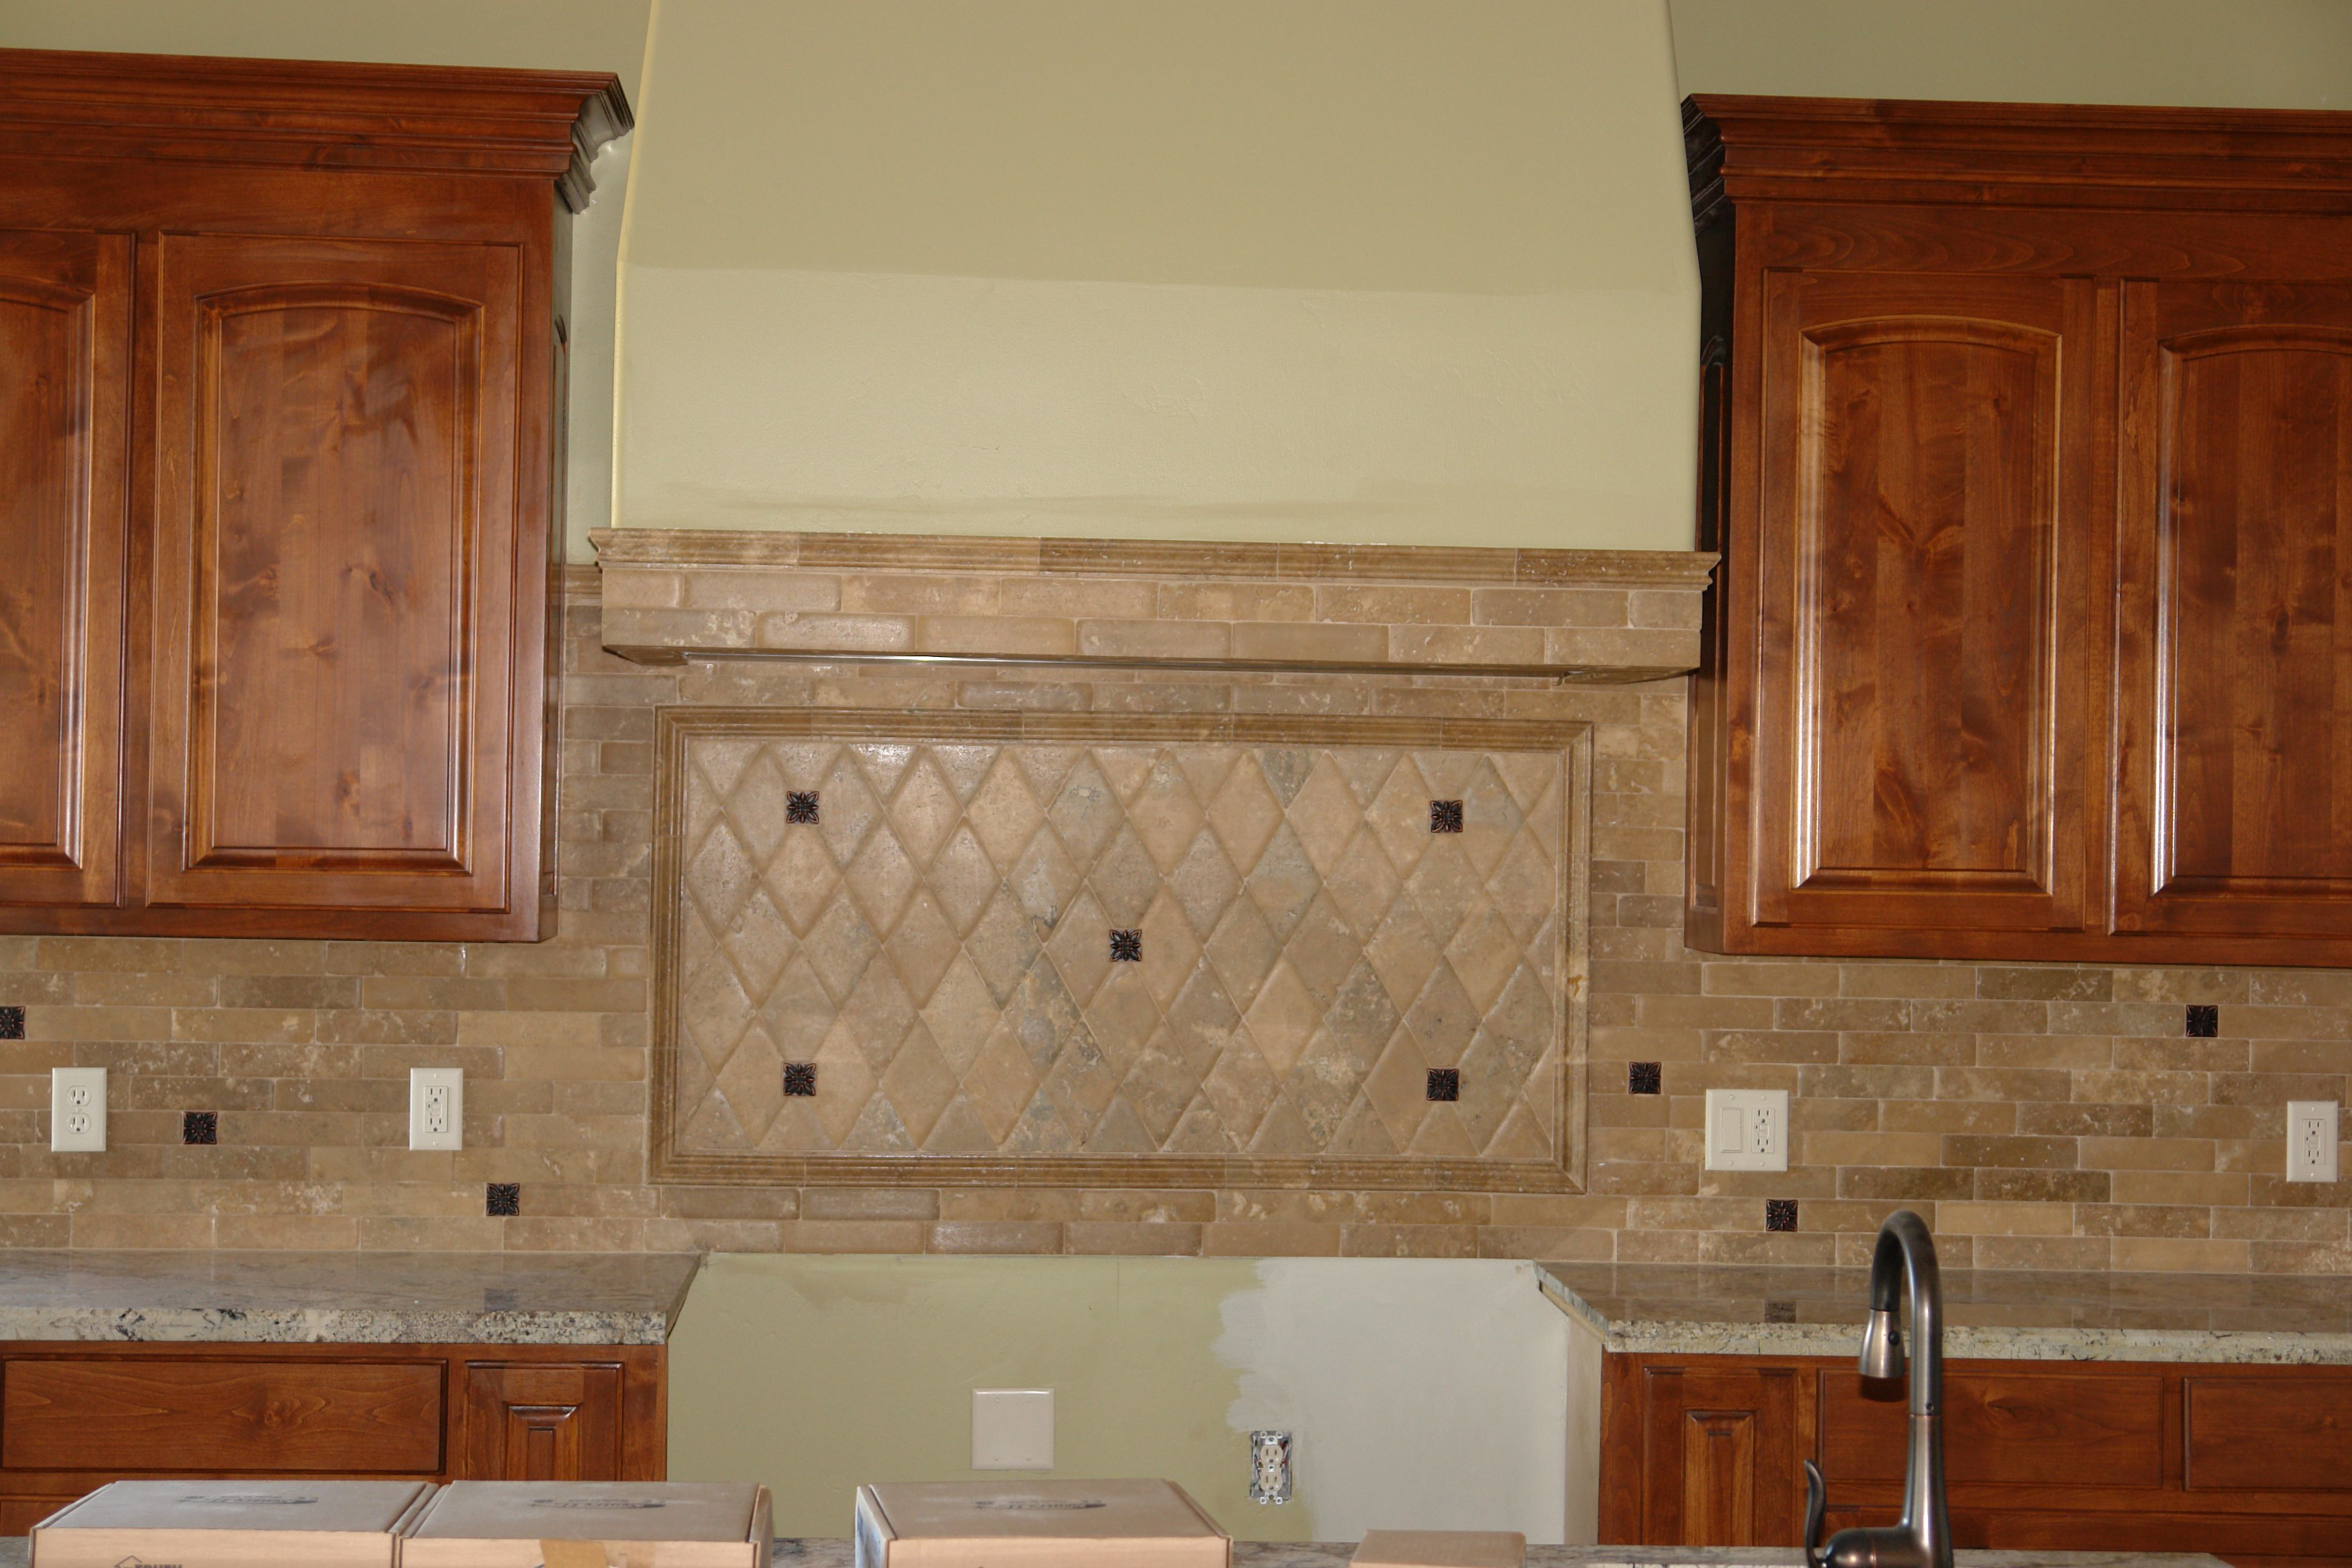 Kitchen Backsplash Edge kitchen backsplash using pillowed edge travertine | latest project